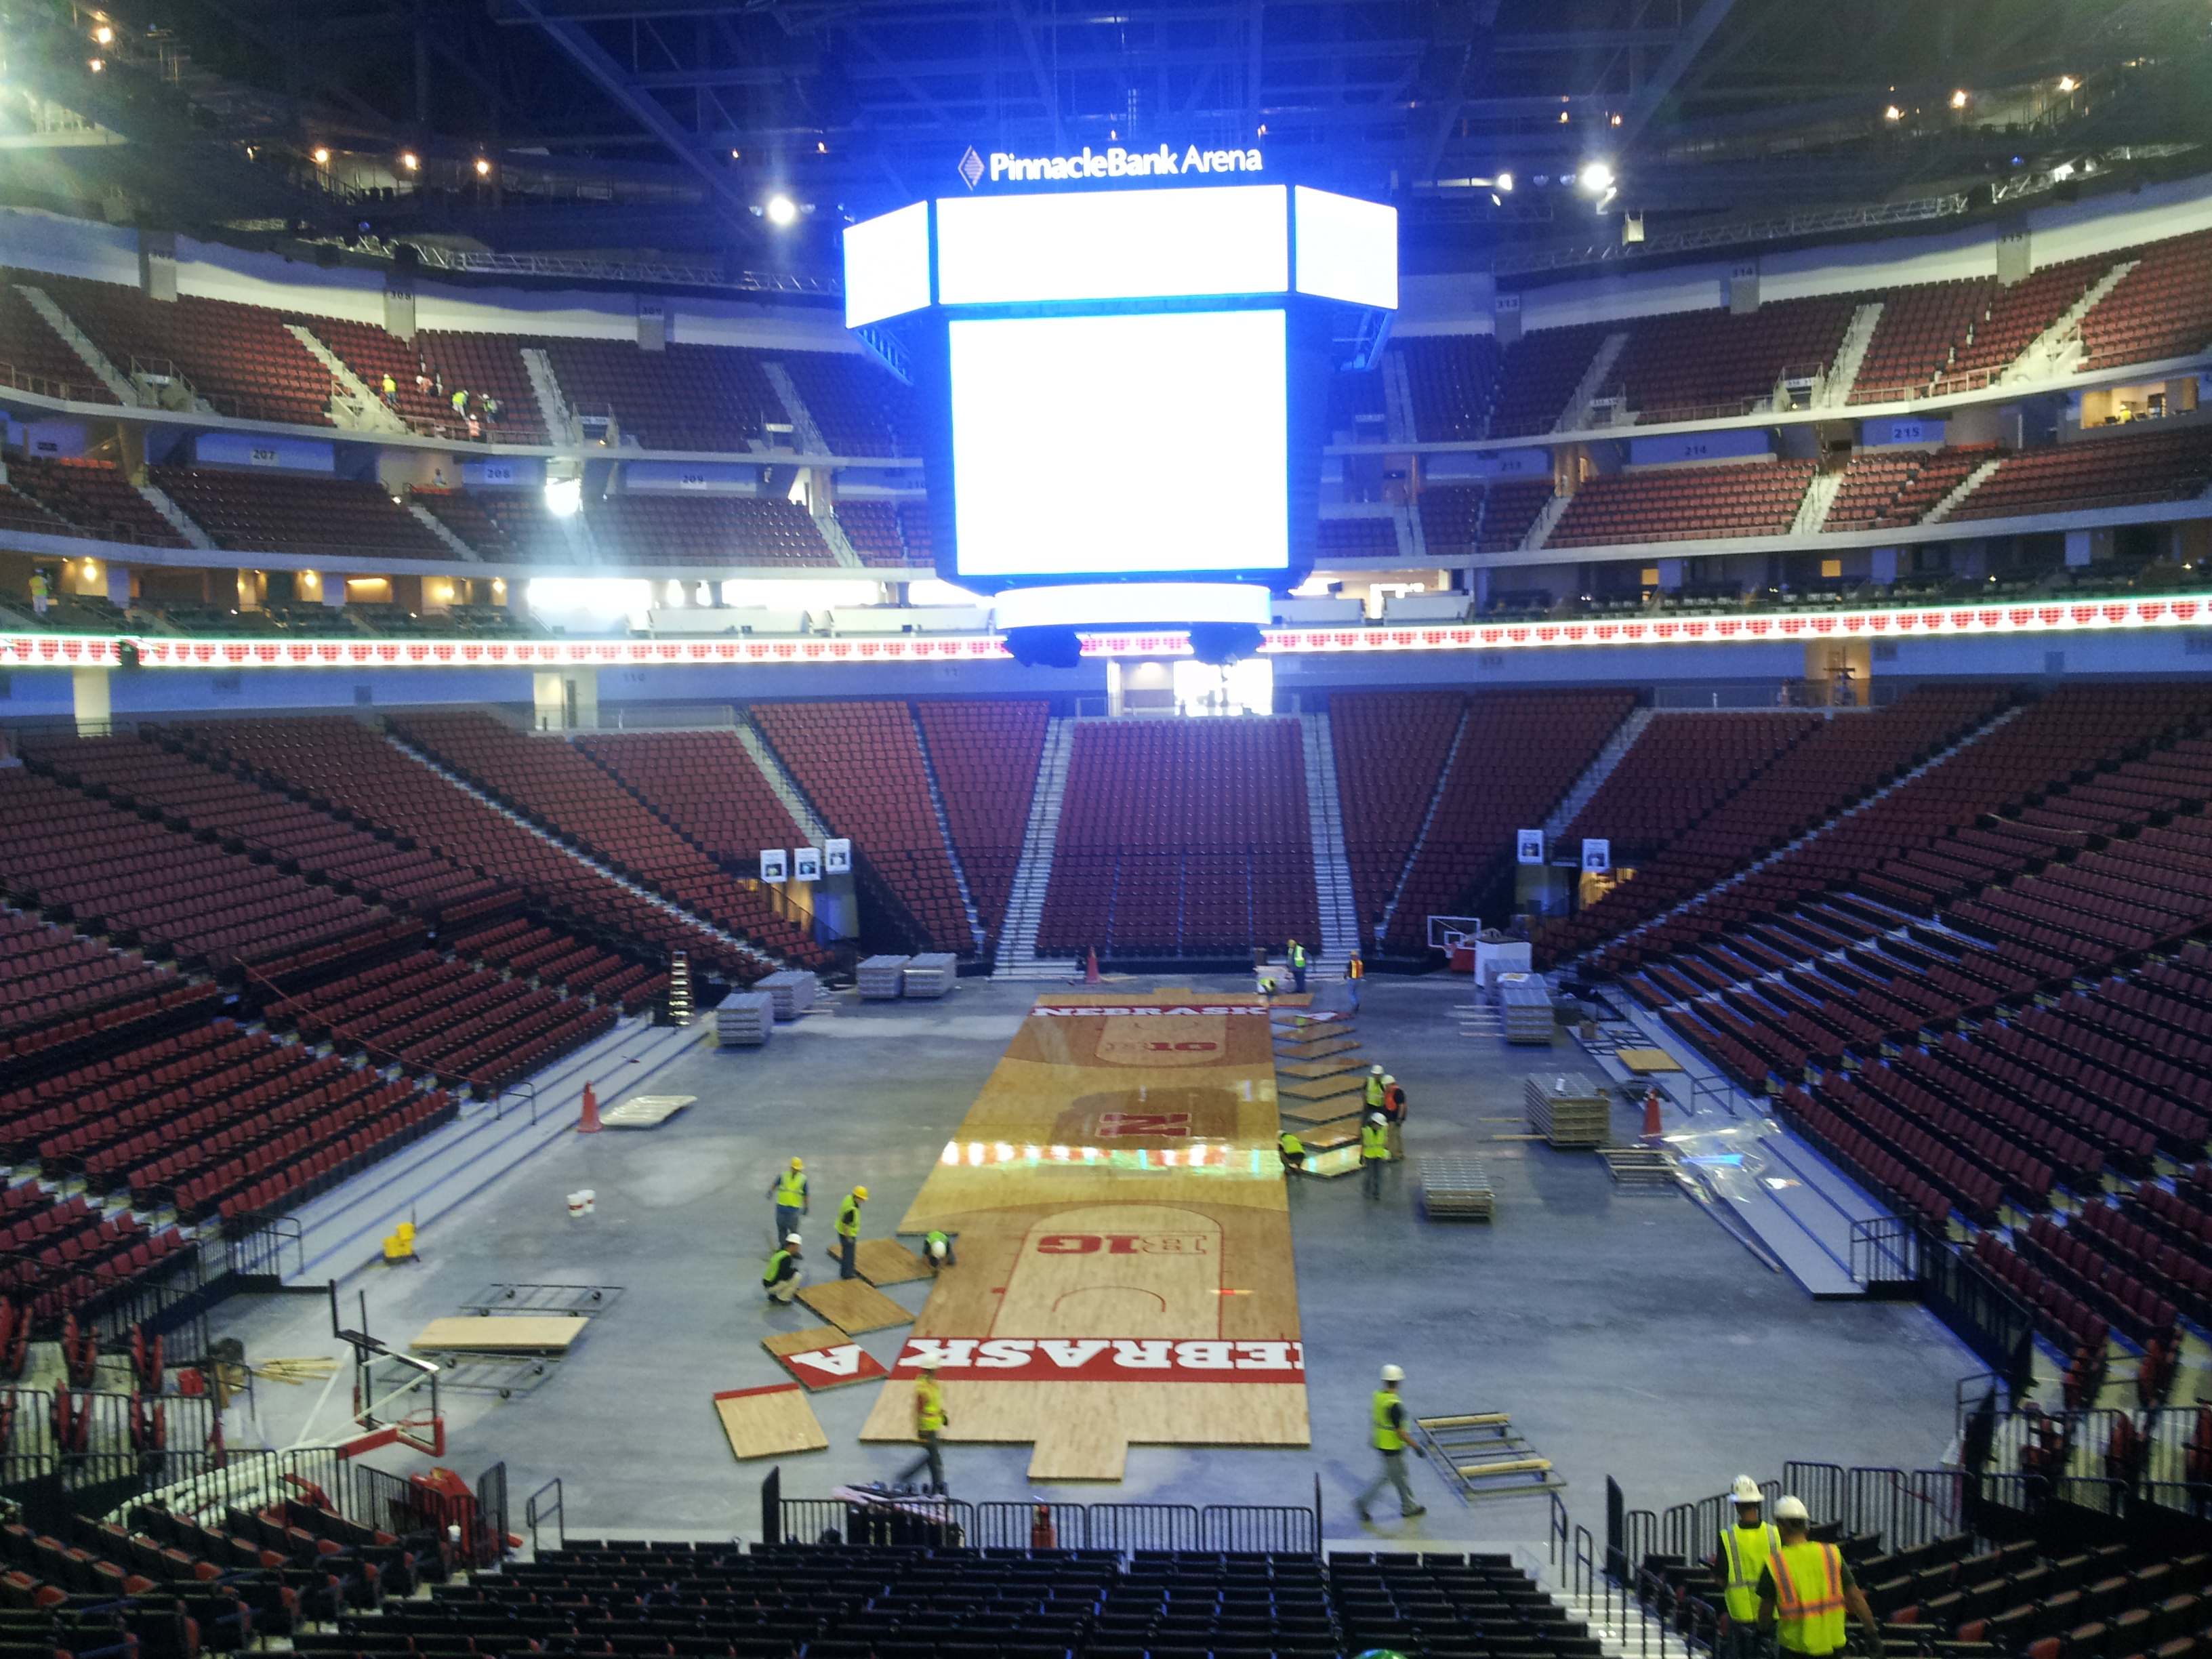 Pinnacle Bank Arena center hung